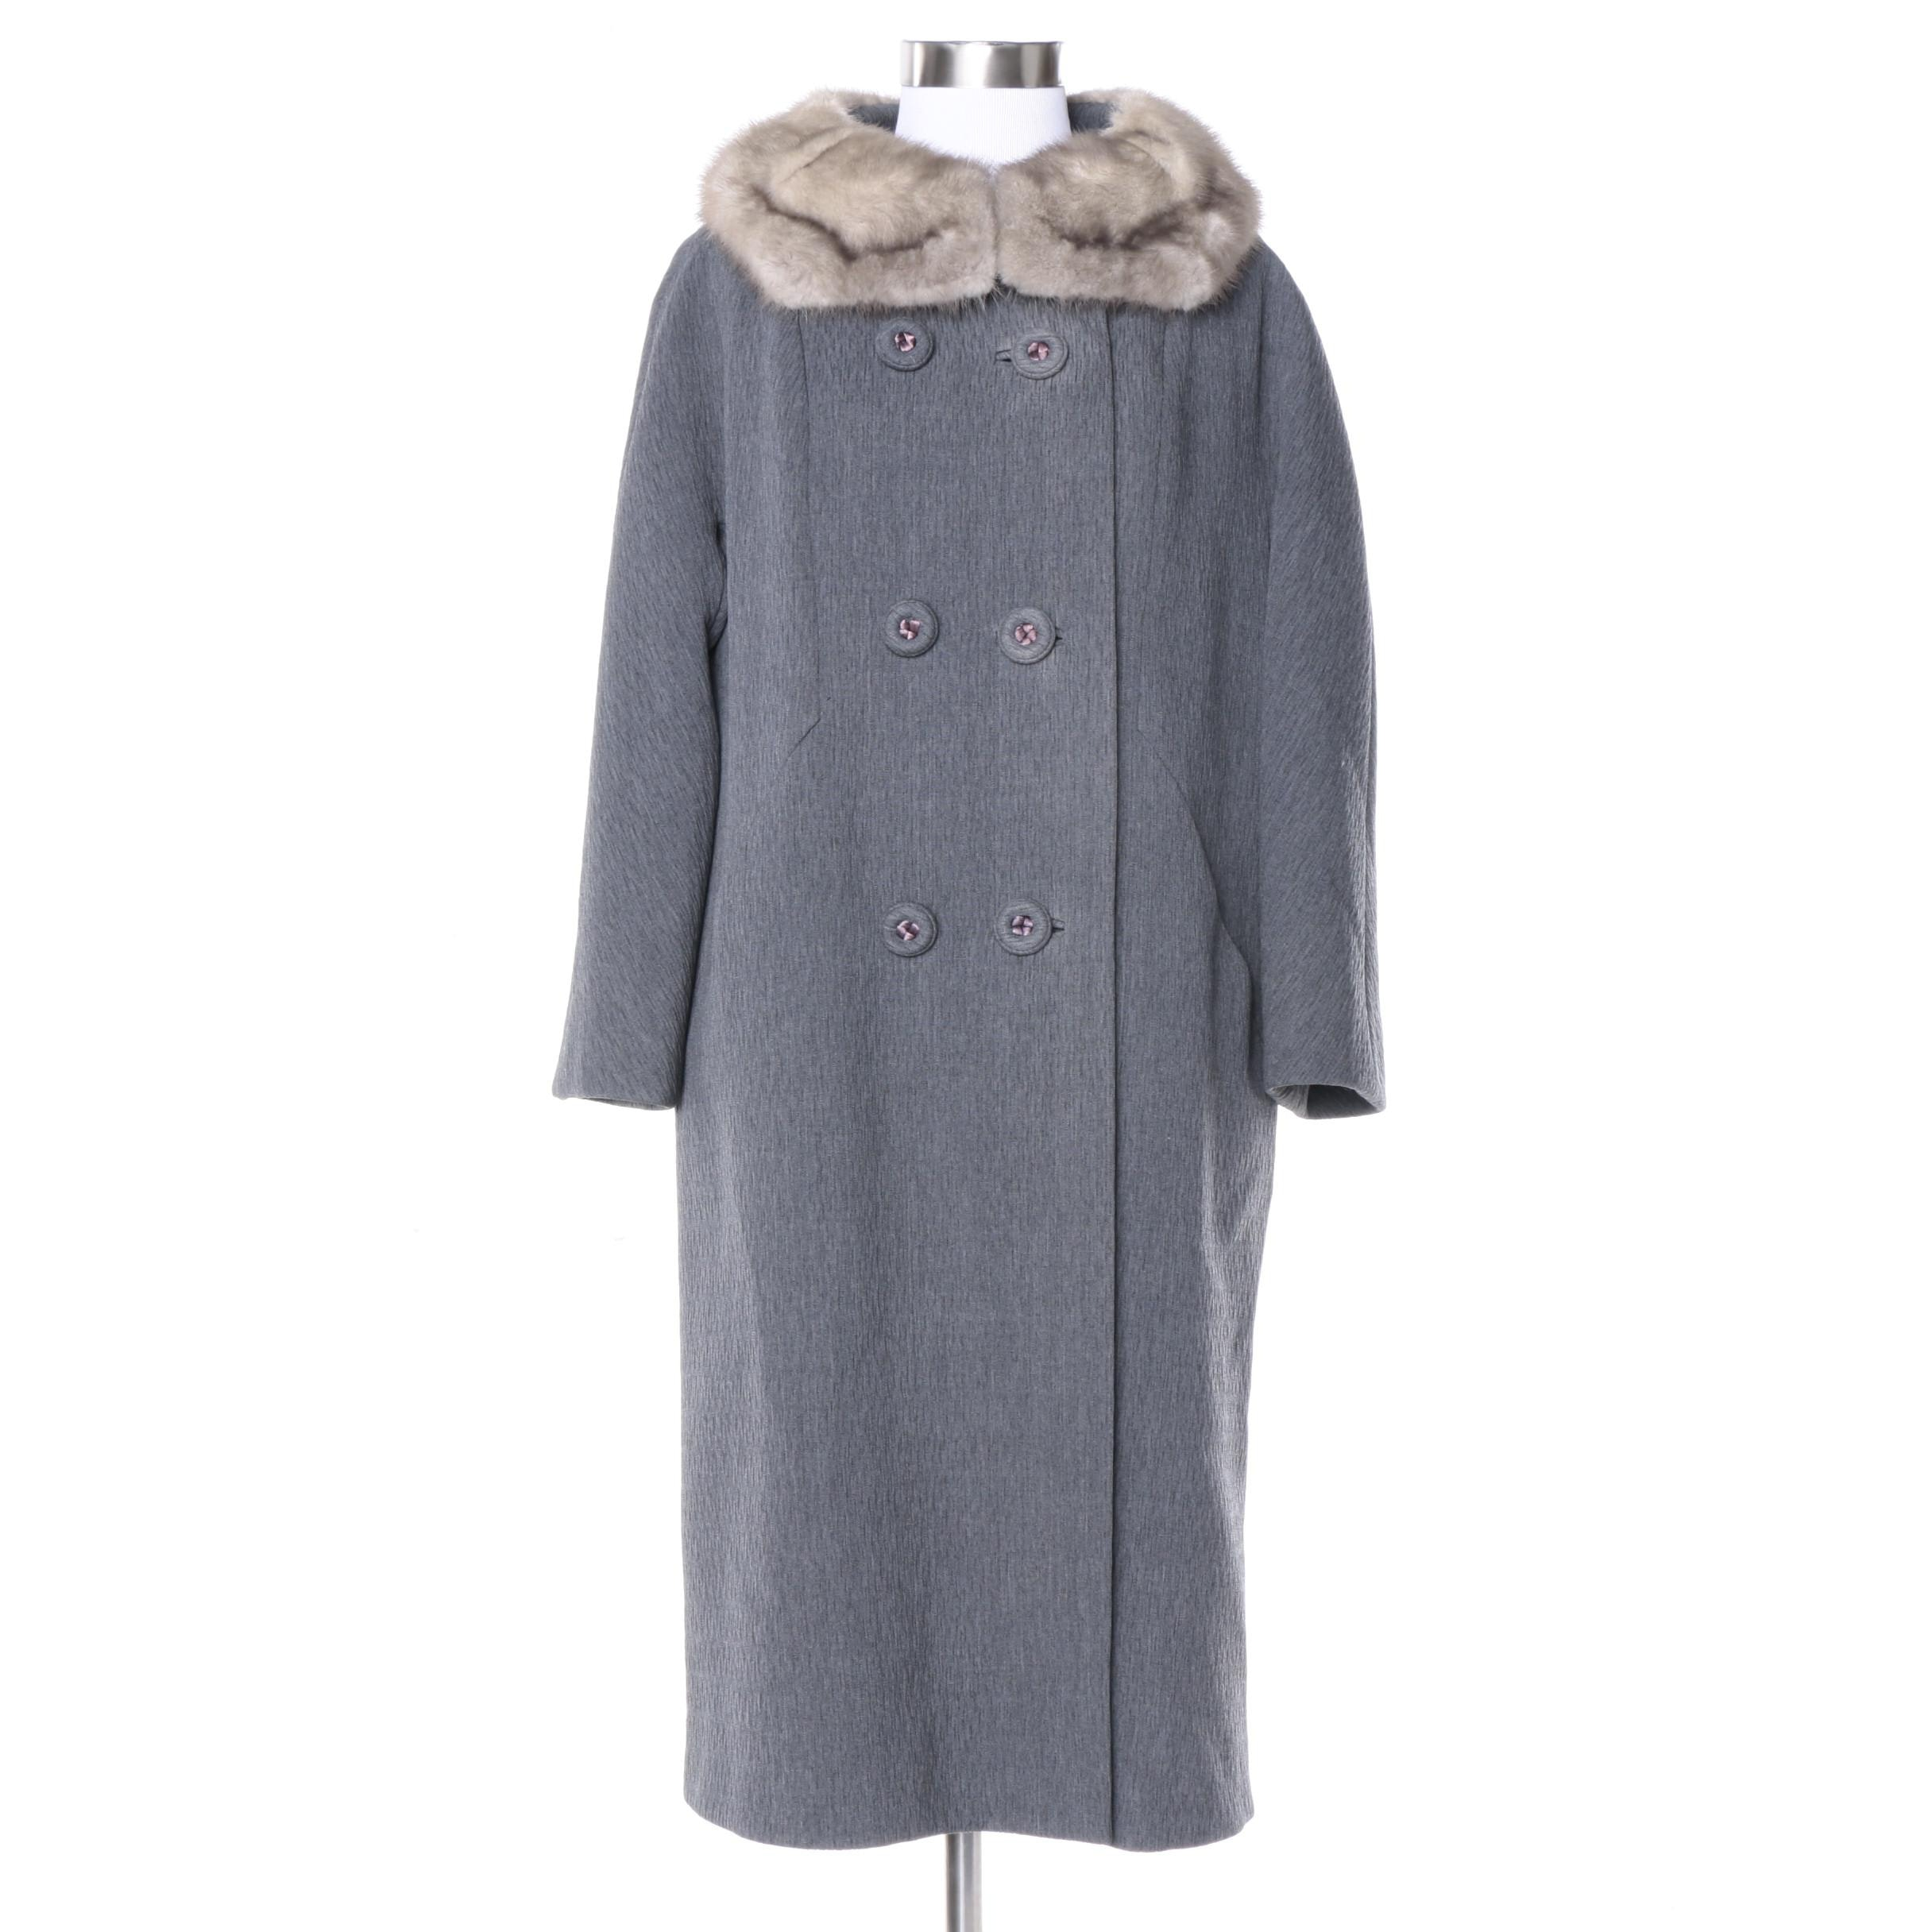 Vintage Double-Breasted Grey Coat with Grey Mink Collar